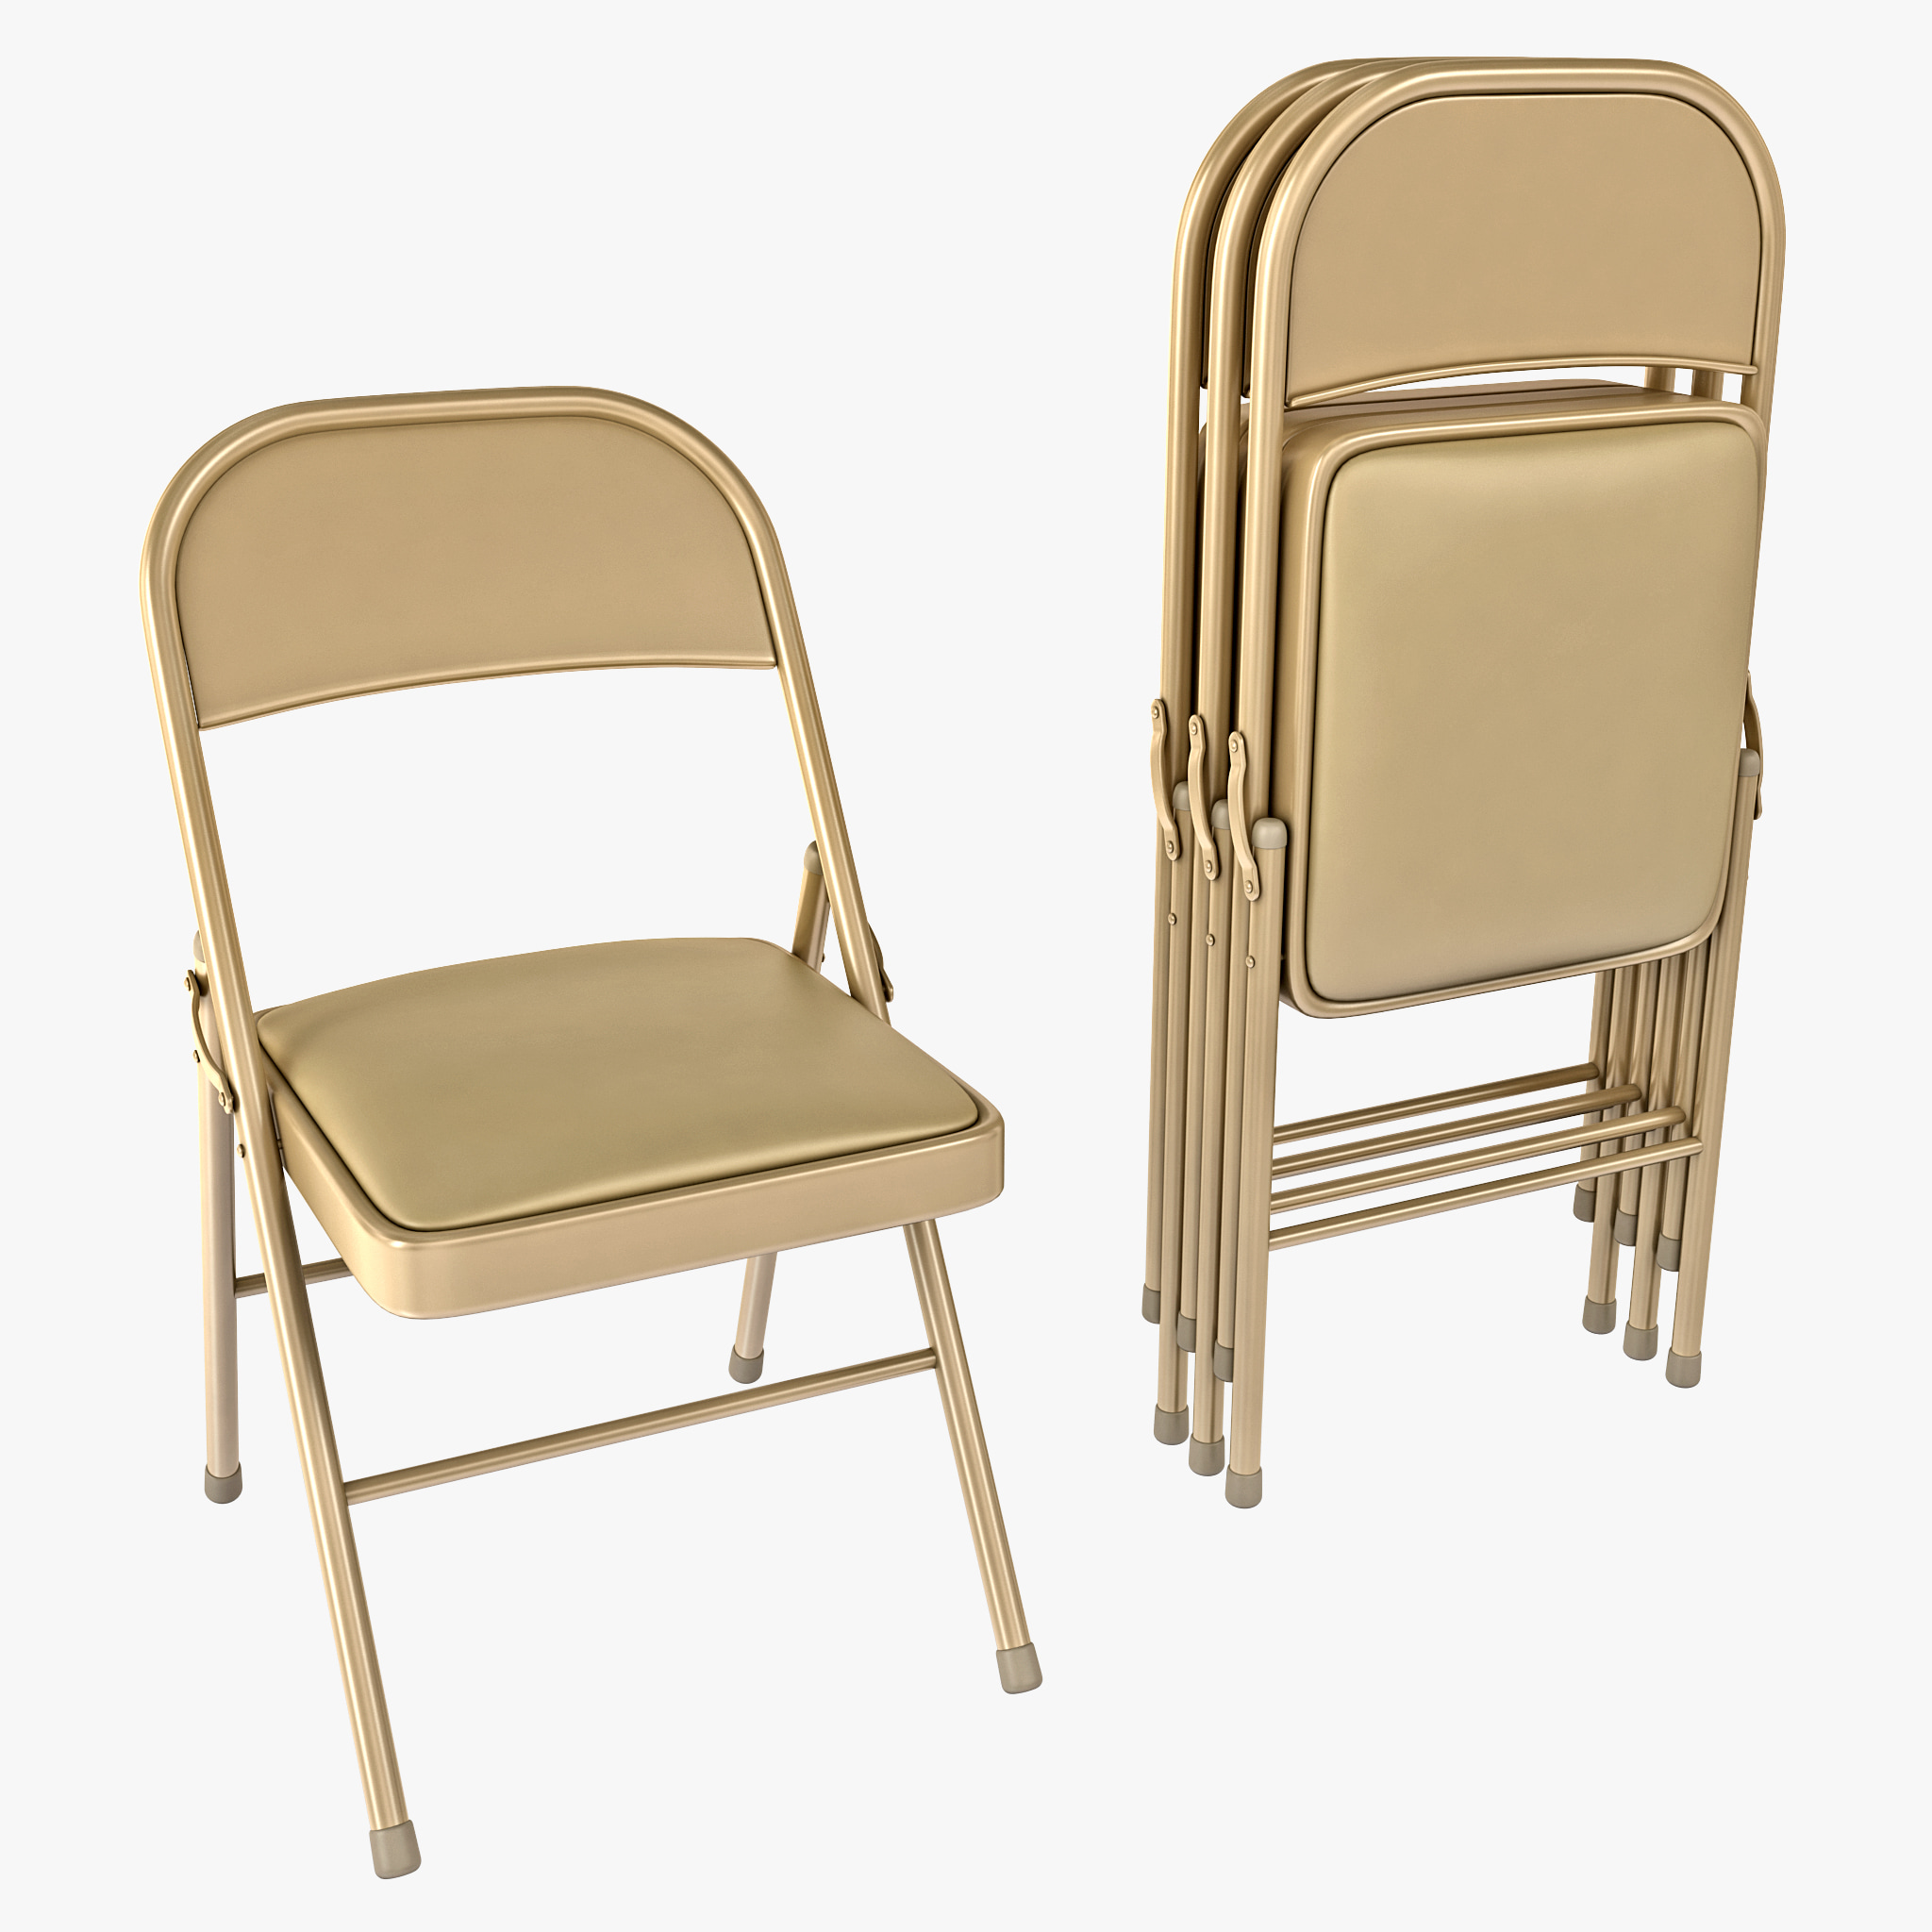 Image Result For Chair Interior D Model Turbosquid